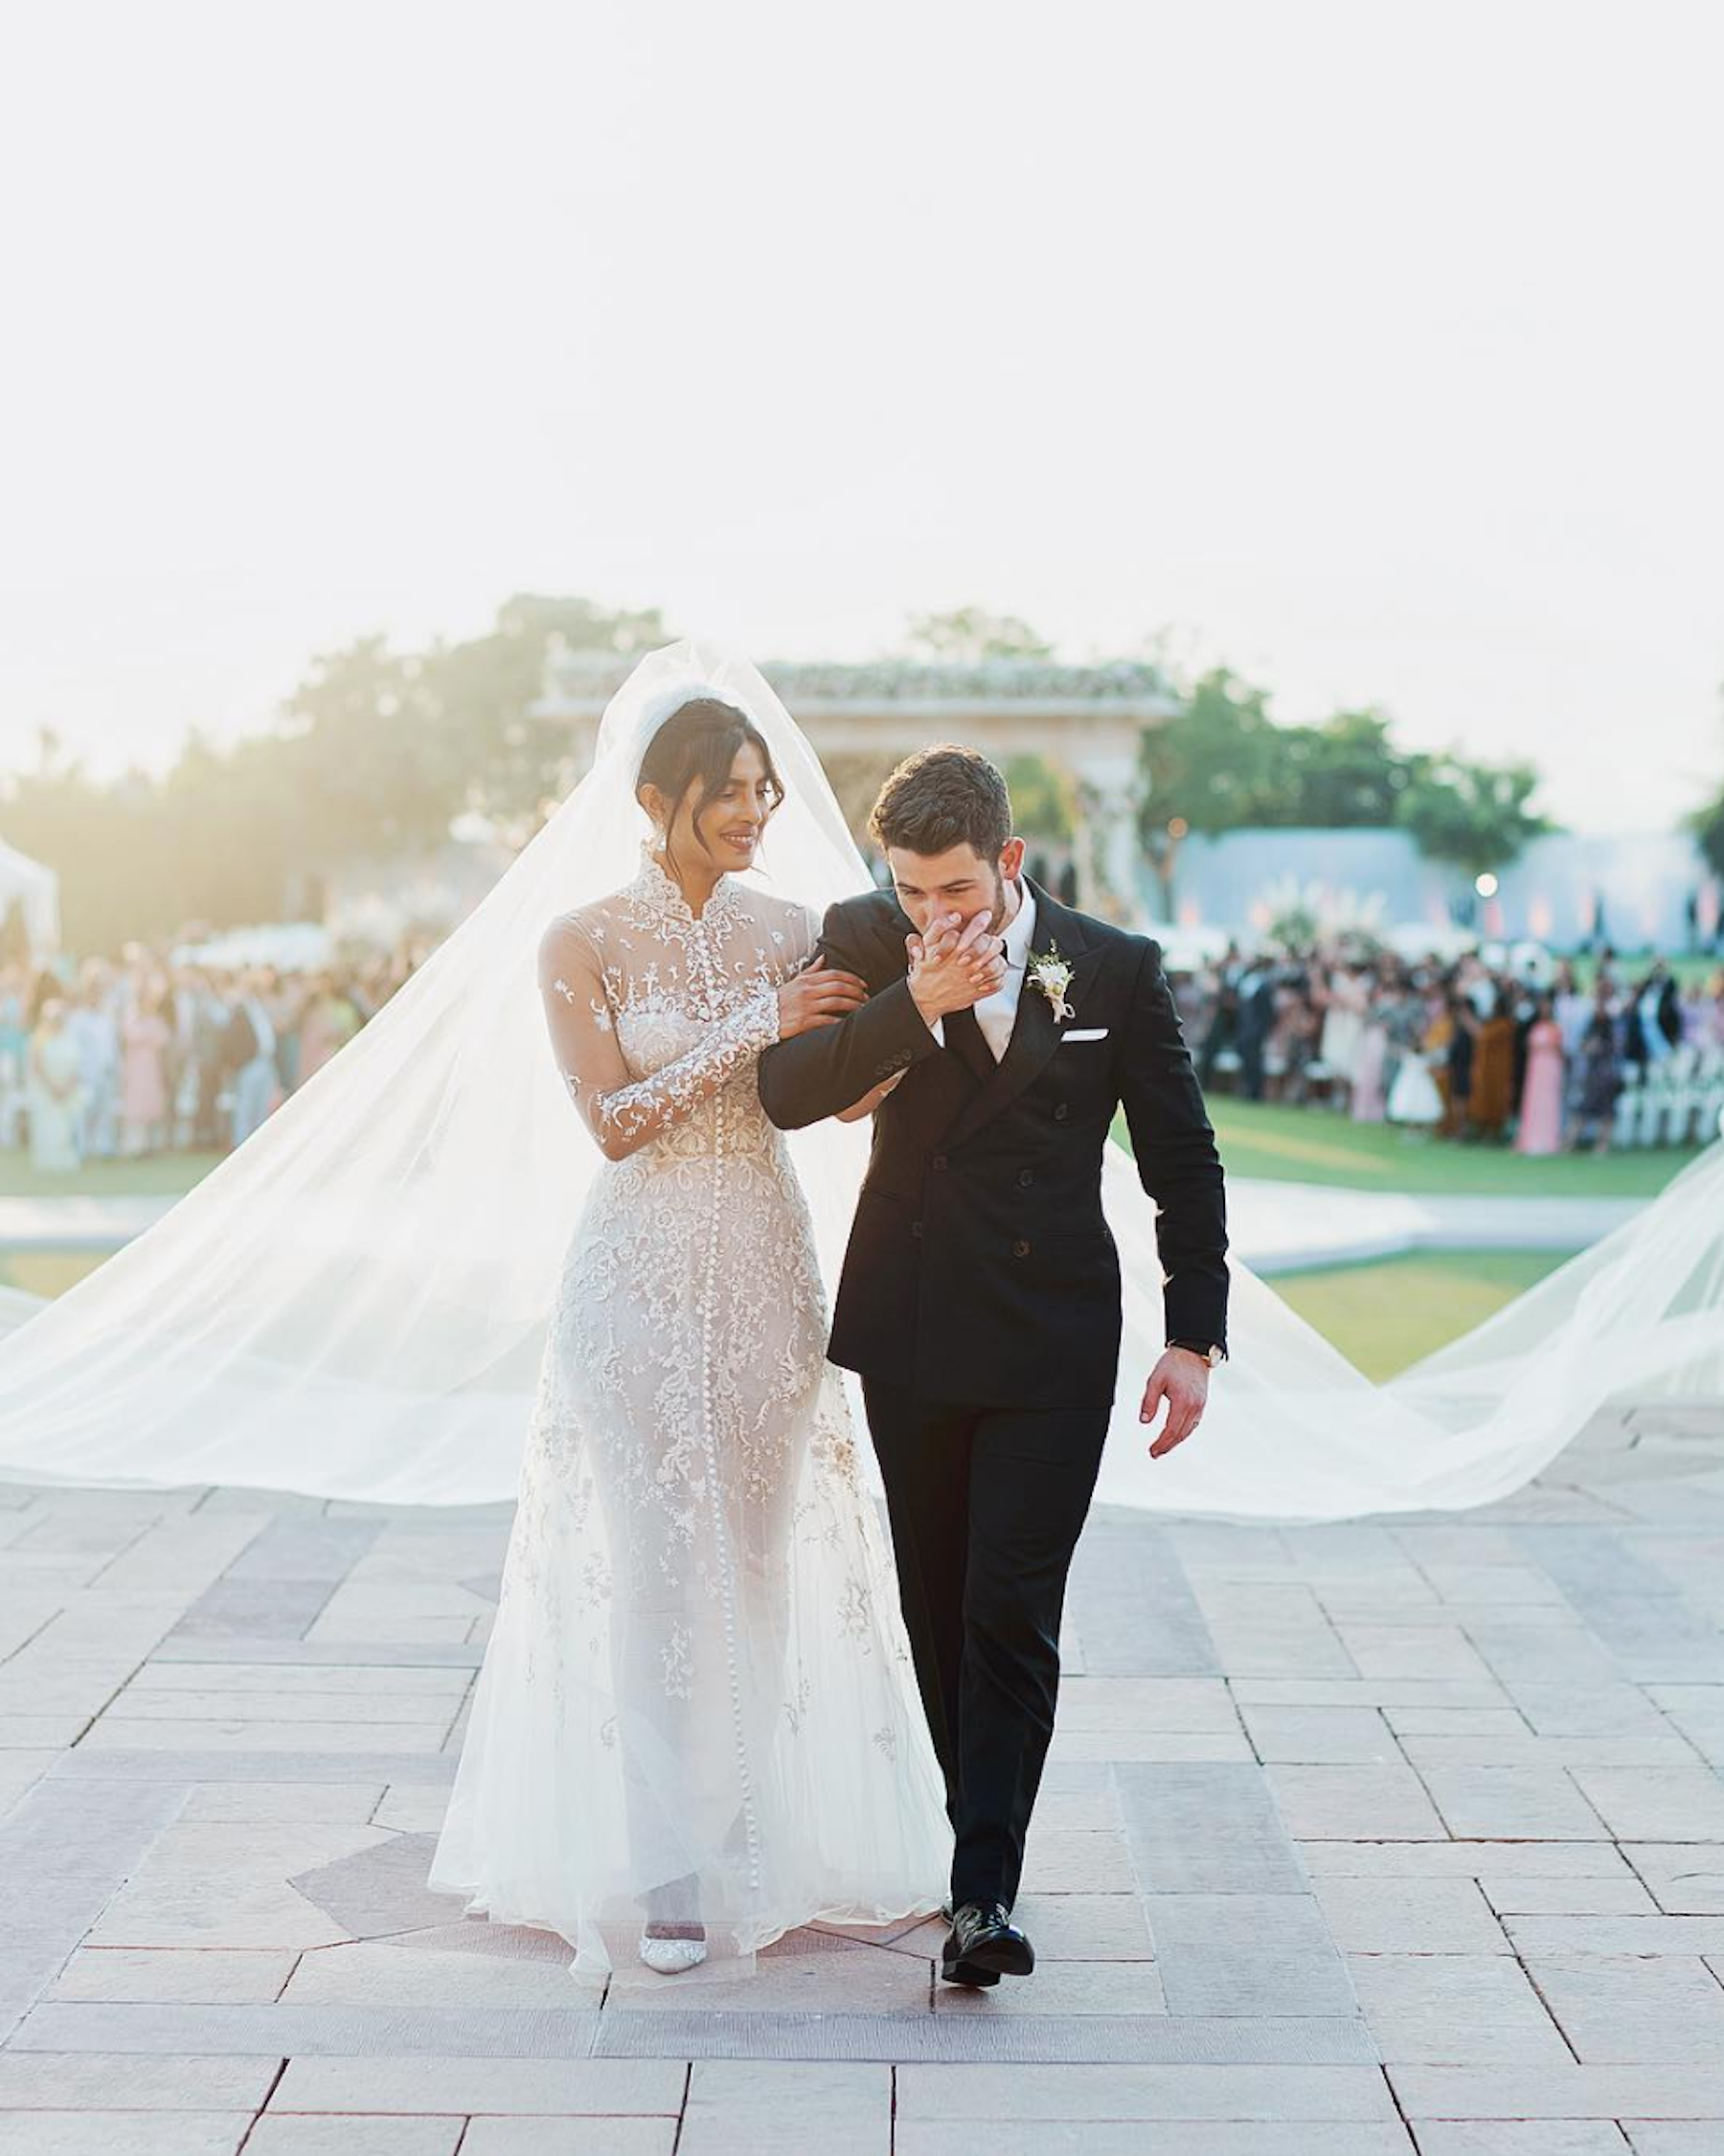 Nick Jonas and Priyanka Chopra in custom Ralph Lauren. - They technically aren't of royal blood but their wedding definitely garnered just as much media attention. A pretty big deal considering the American designer has only designer bridal gowns for his daughter, daughter-in-law, and niece. Priyanka's 75-foot tulle veil was also a show-stopper as it took several guests to carry it down the aisle.